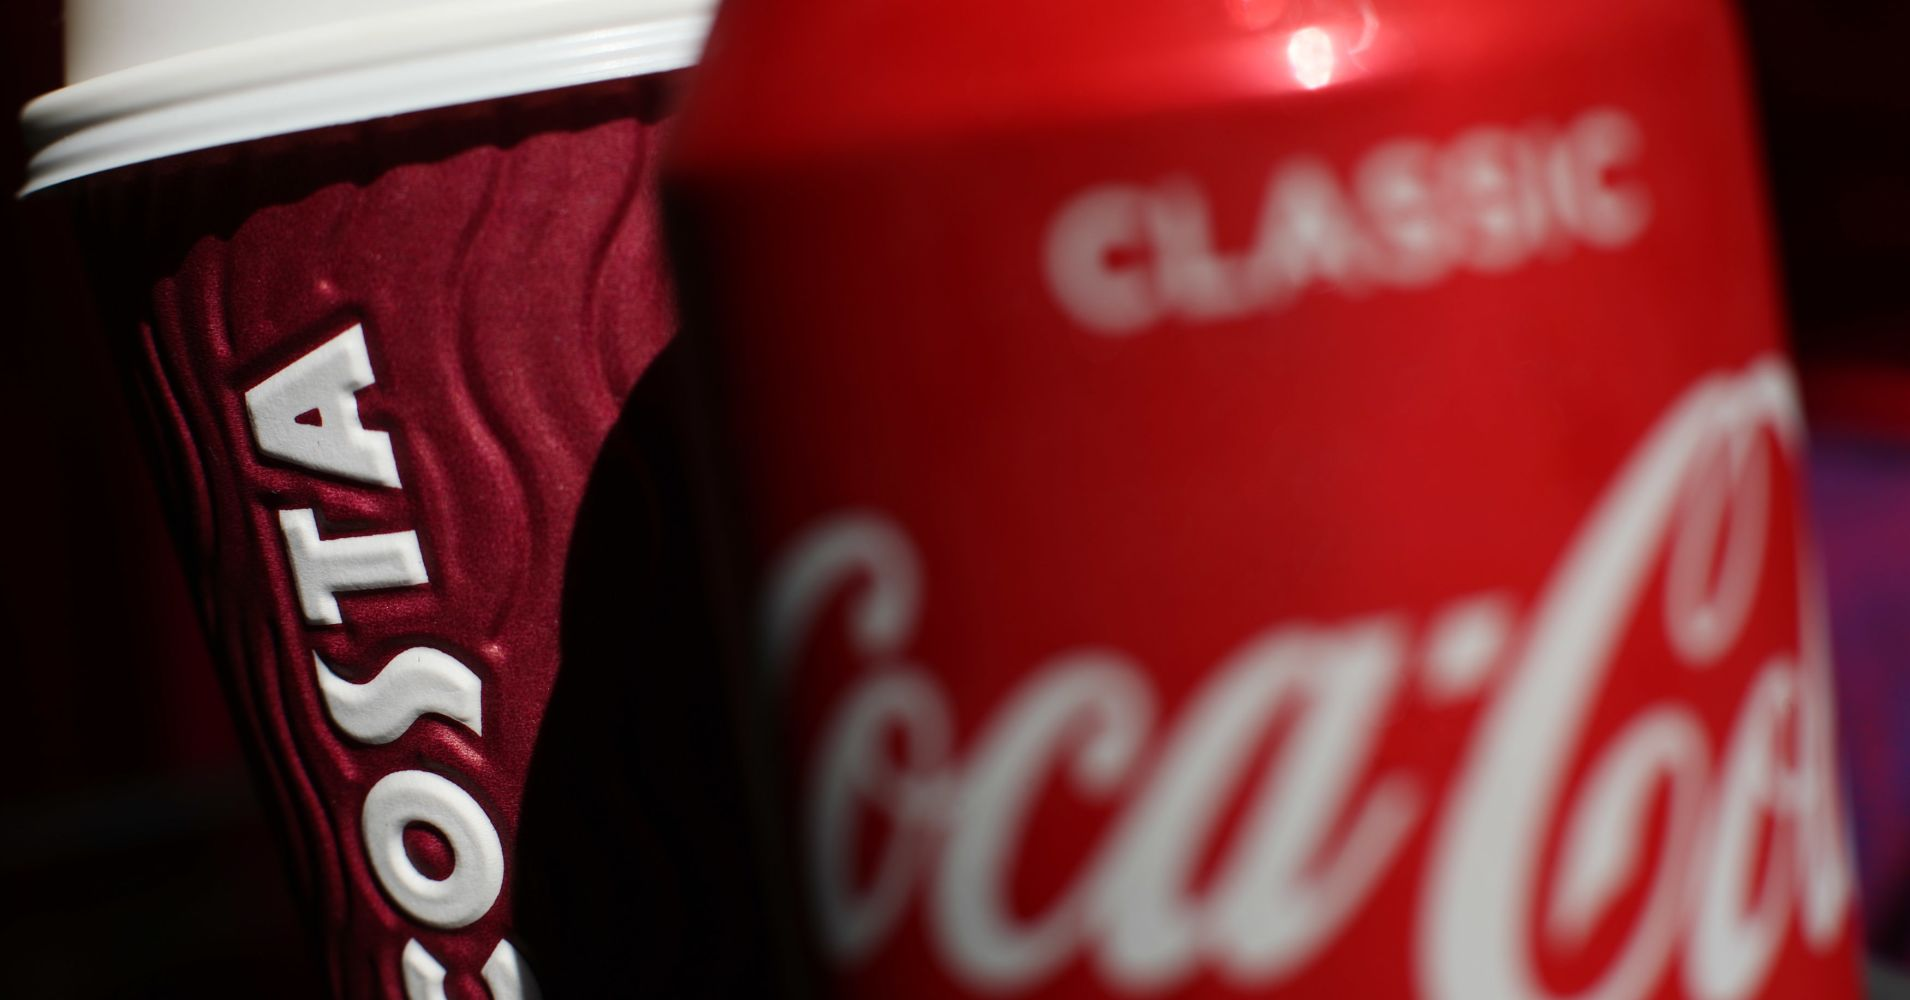 A can of Coca-Cola next to a cup of Costa coffee.